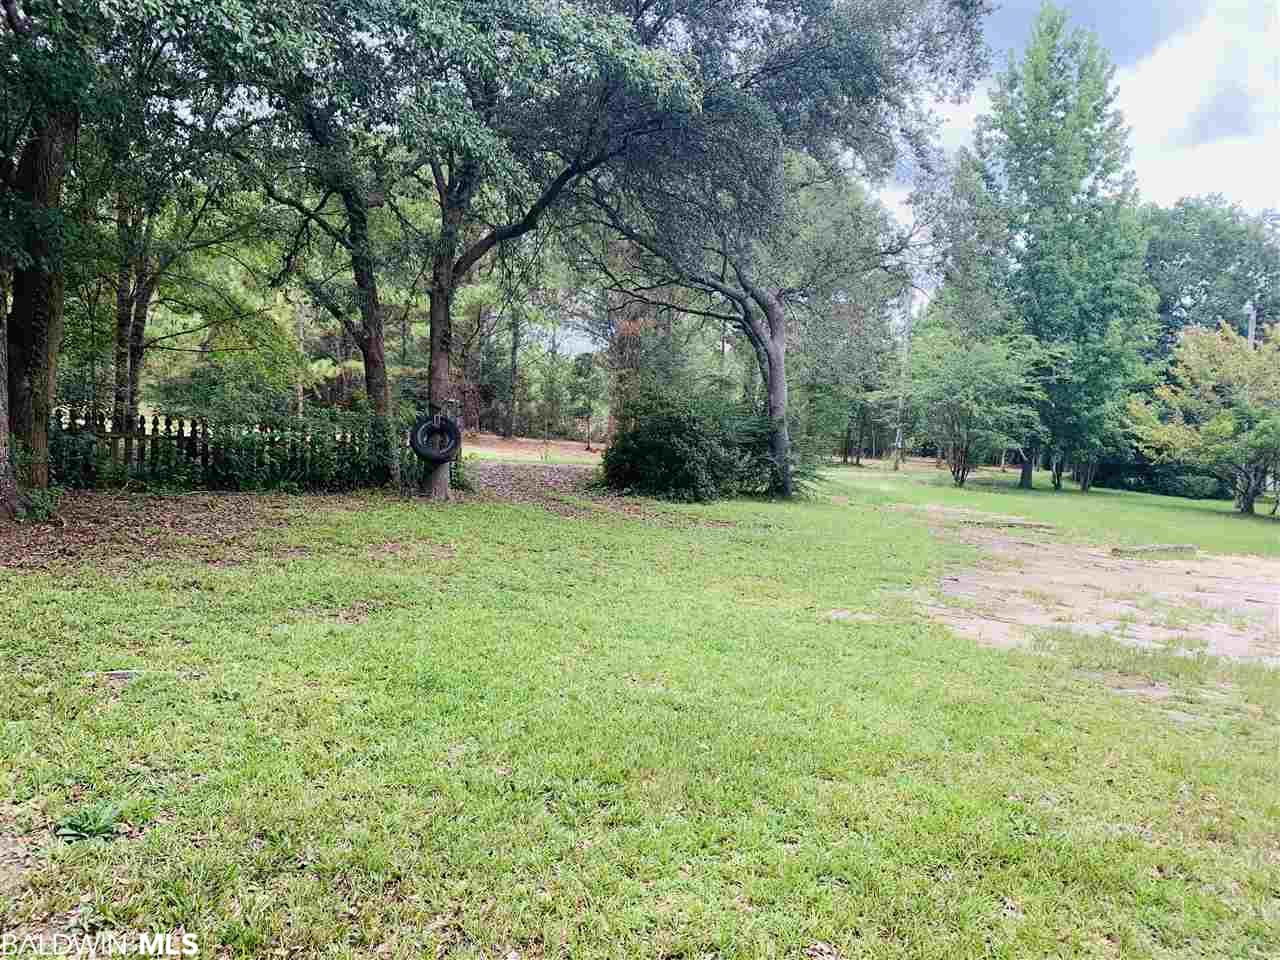 This beautiful 3 bedroom 2 bath home is located on half an acre in Fairhope.  Features include brand new flooring(2019), freshly painted interior, fireplace, updated smoothed ceilings throughout(2019), upgraded light fixtures and much more. The master bedroom has a large walk in closet and lots of windows. Property is one of kind in that it backs up to an open field providing a feeling of country living and across the street from Fish River.  Zoned for Fairhope schools. Schedule your showing today!